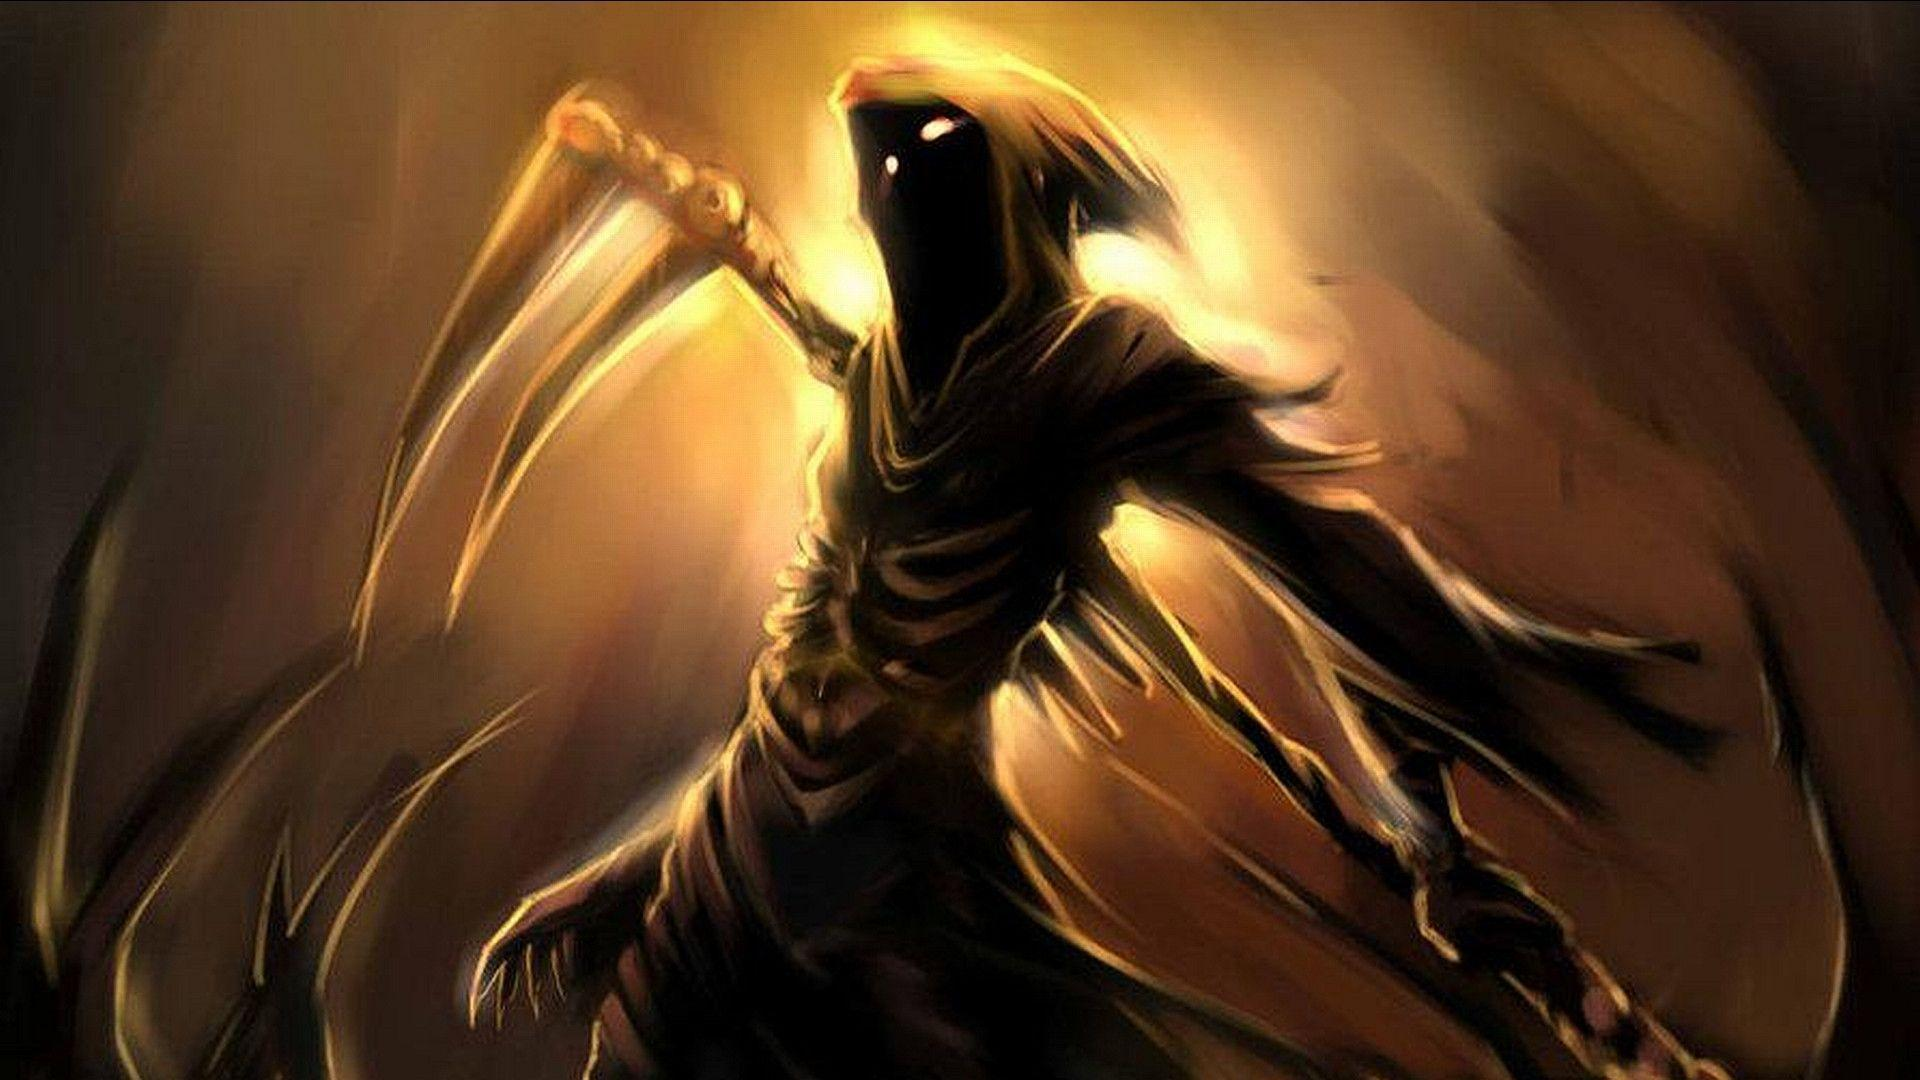 Grim Reaper Desktop Backgrounds - Wallpaper Cave